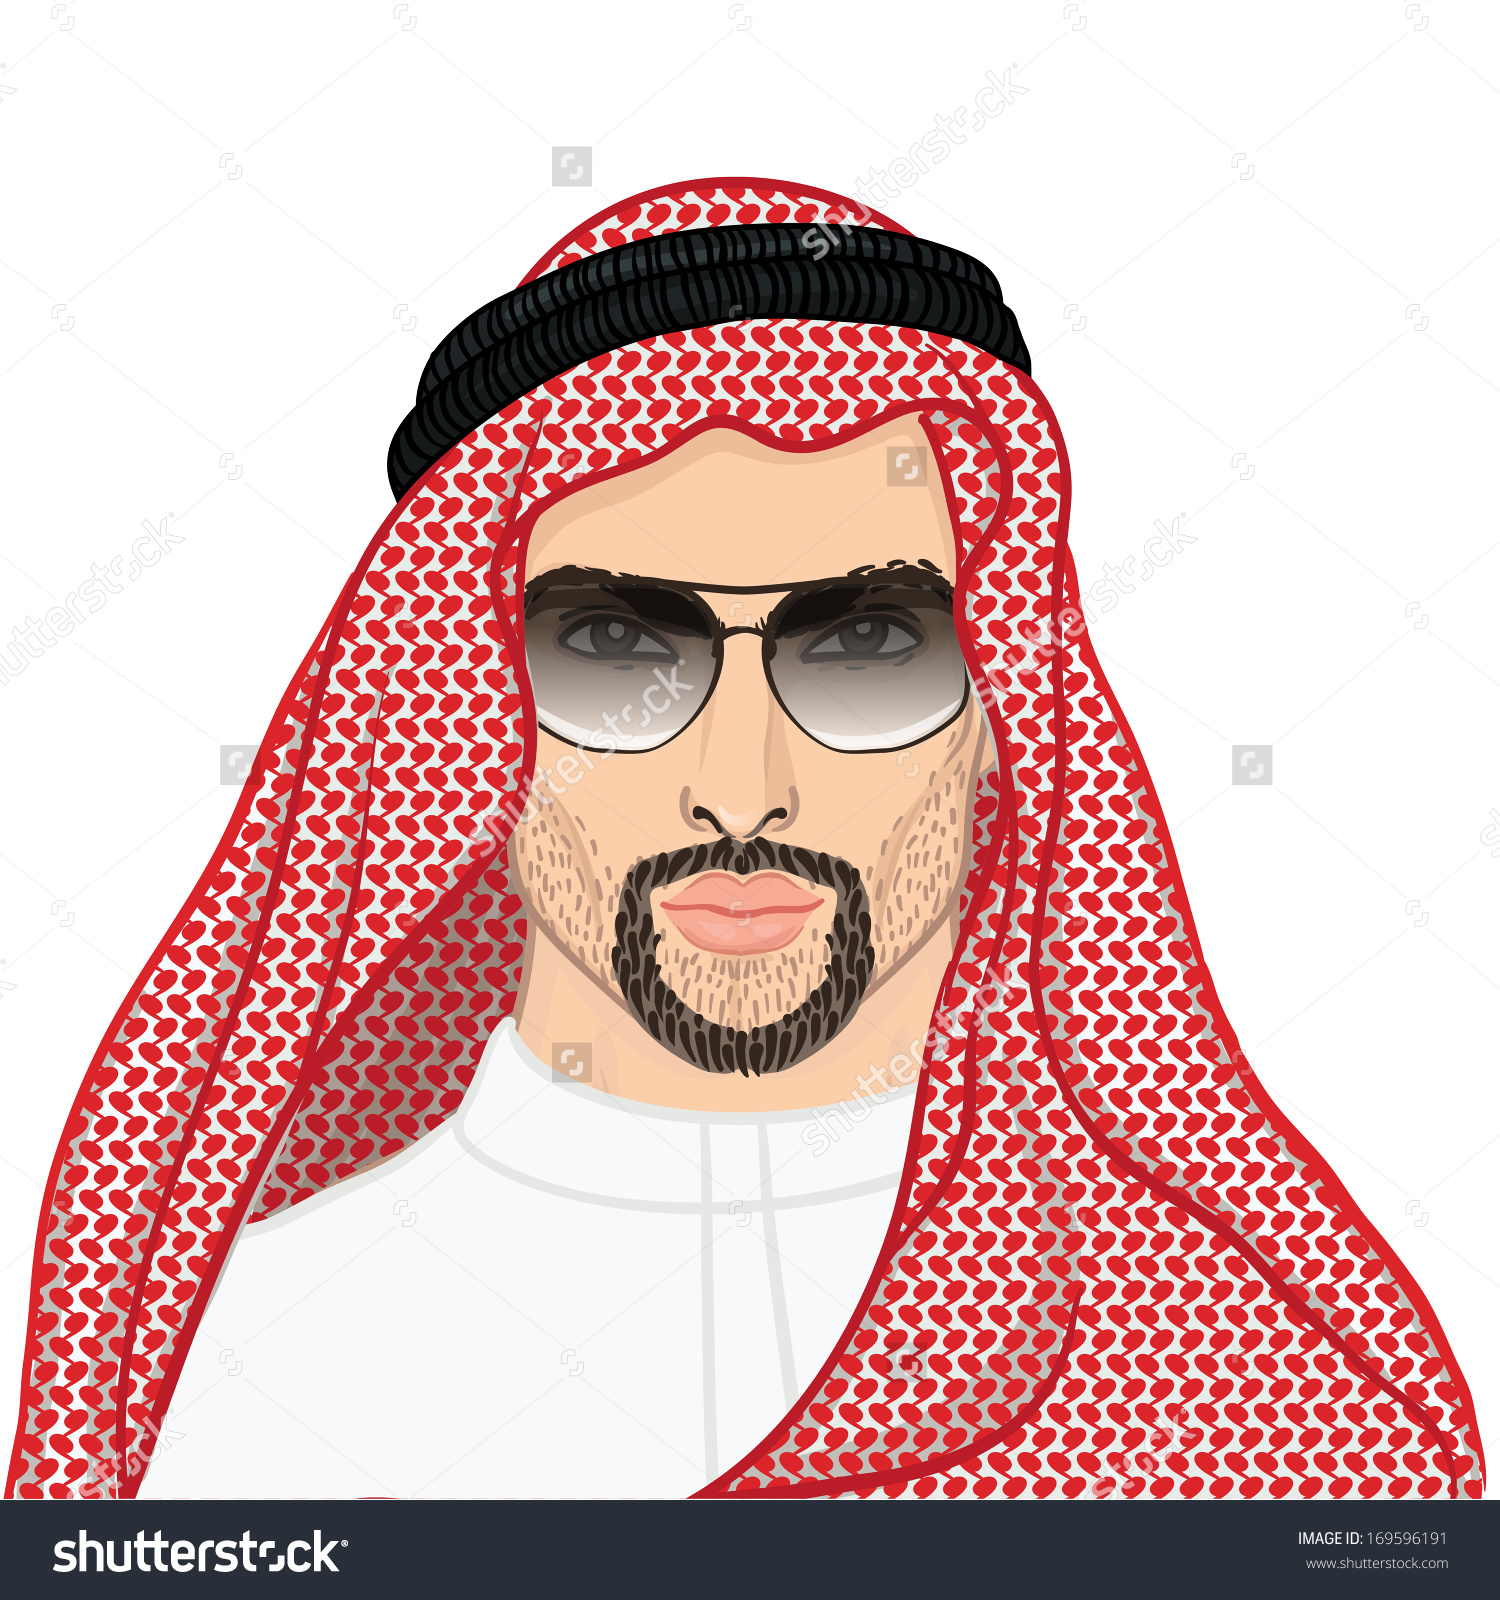 Face for arabic man clipart clip art free download Saudi man face clipart - ClipartFest clip art free download